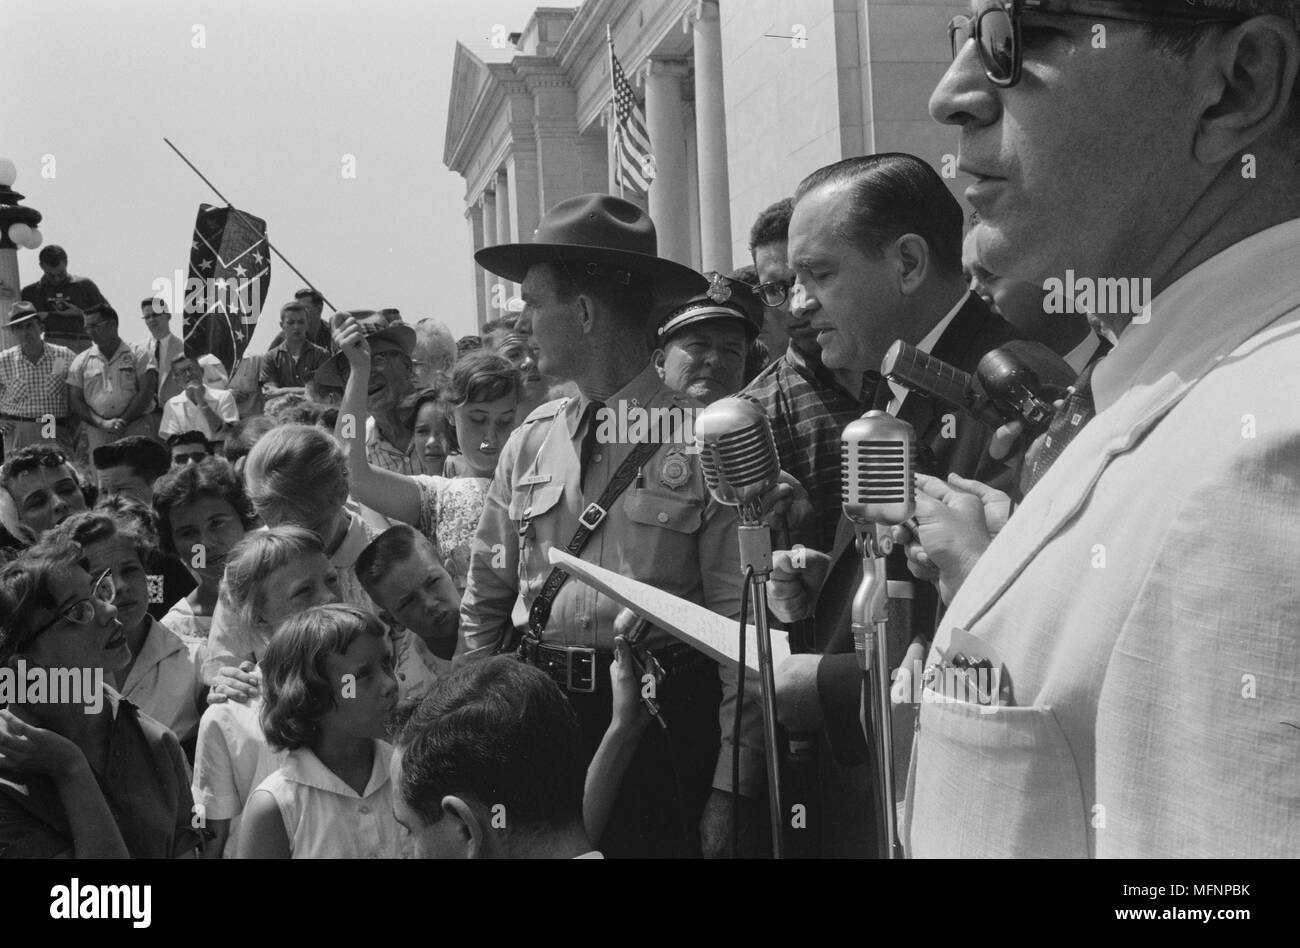 Little Rock, USA, 1959. Rally at state capitol.  Photograph shows a group of people, one holding a Confederate flag, surrounding speakers and National Guard, protesting the admission of the 'Little Rock Nine' to Central High School. 20 August 1959. Photographer: John T  Bledsoe. - Stock Image